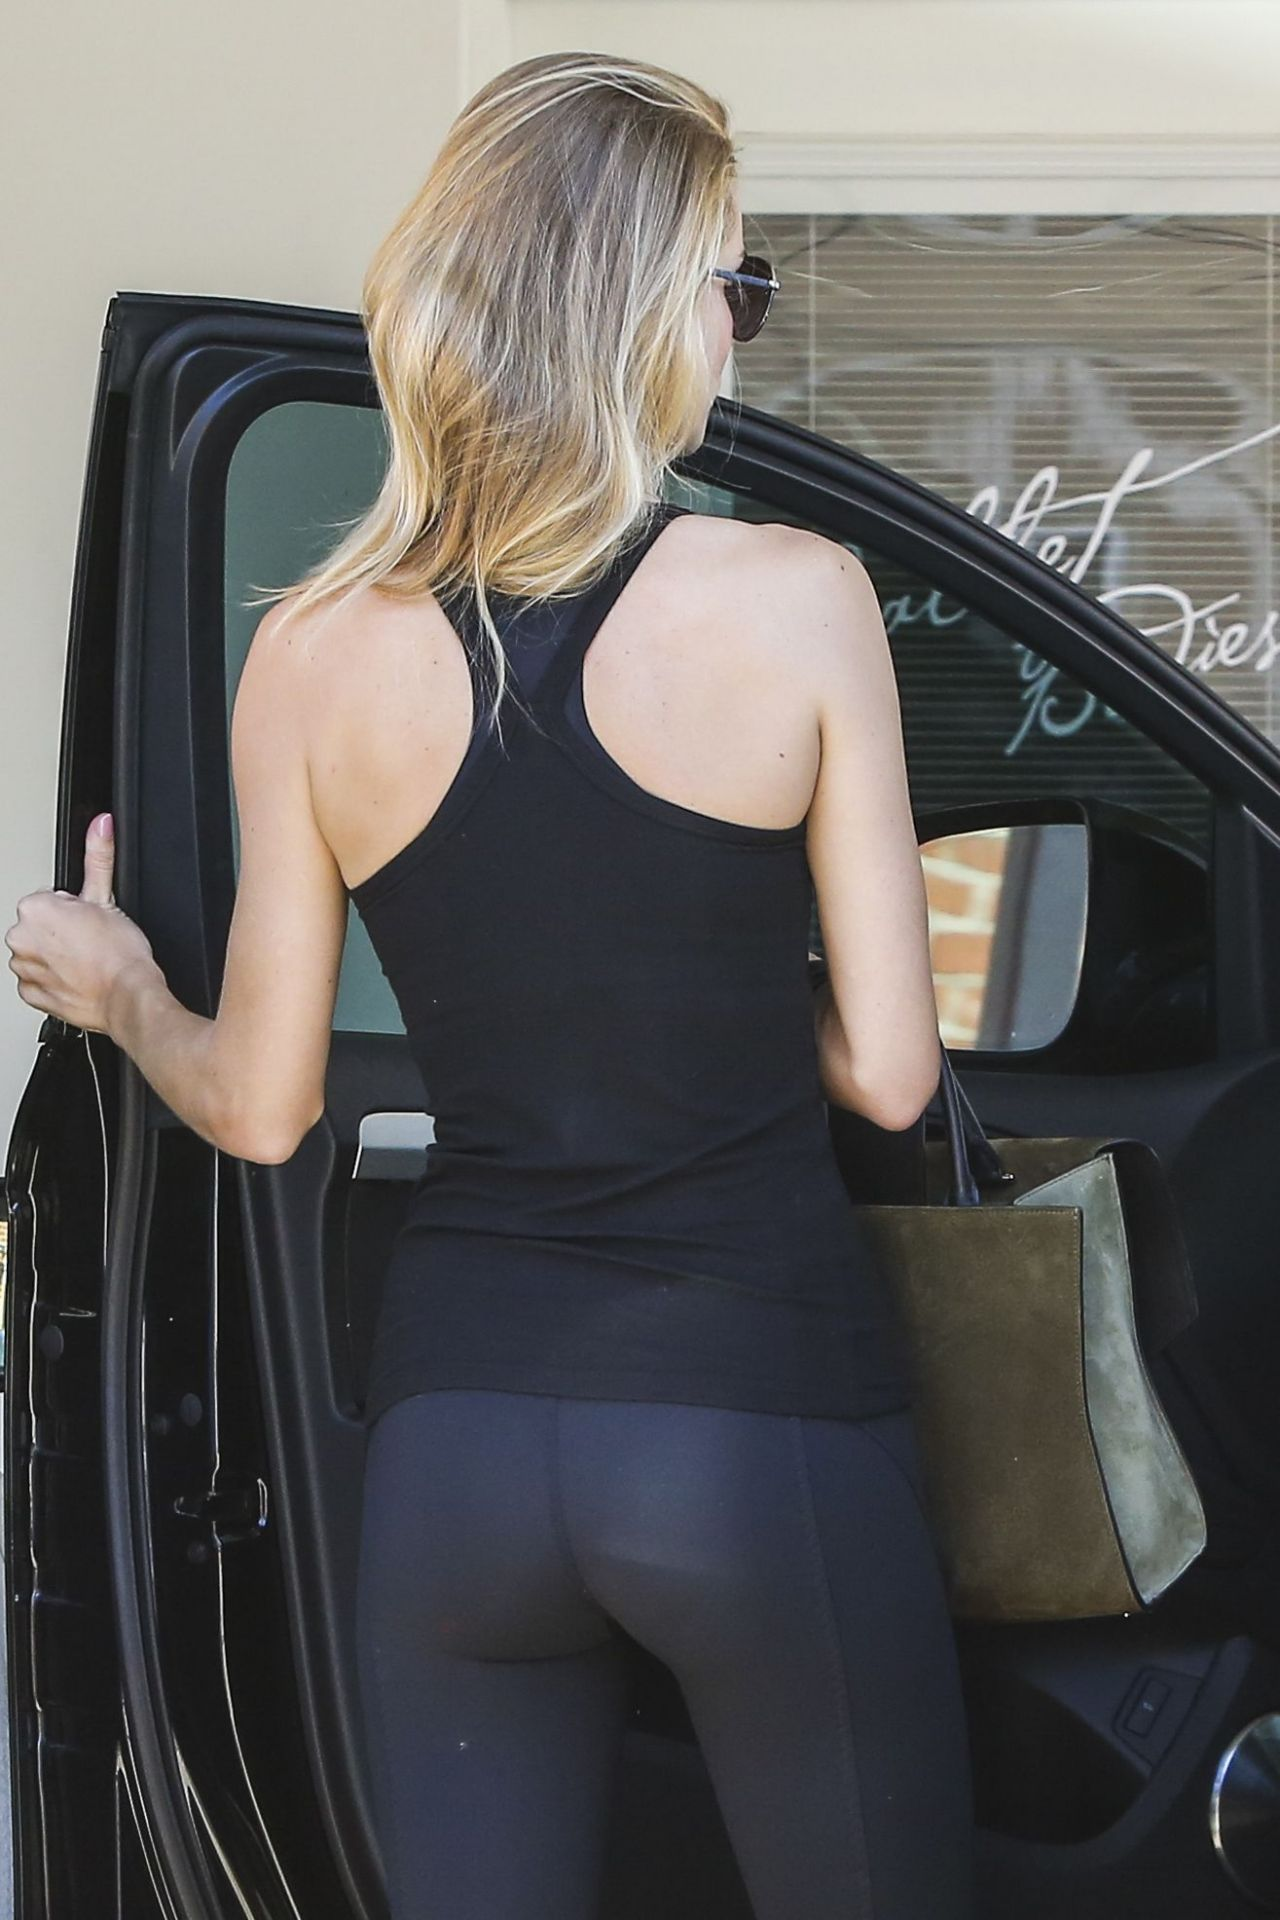 Rosie Huntington-Whiteley Booty in Tights at a Gym in West Hollywood - August 2014